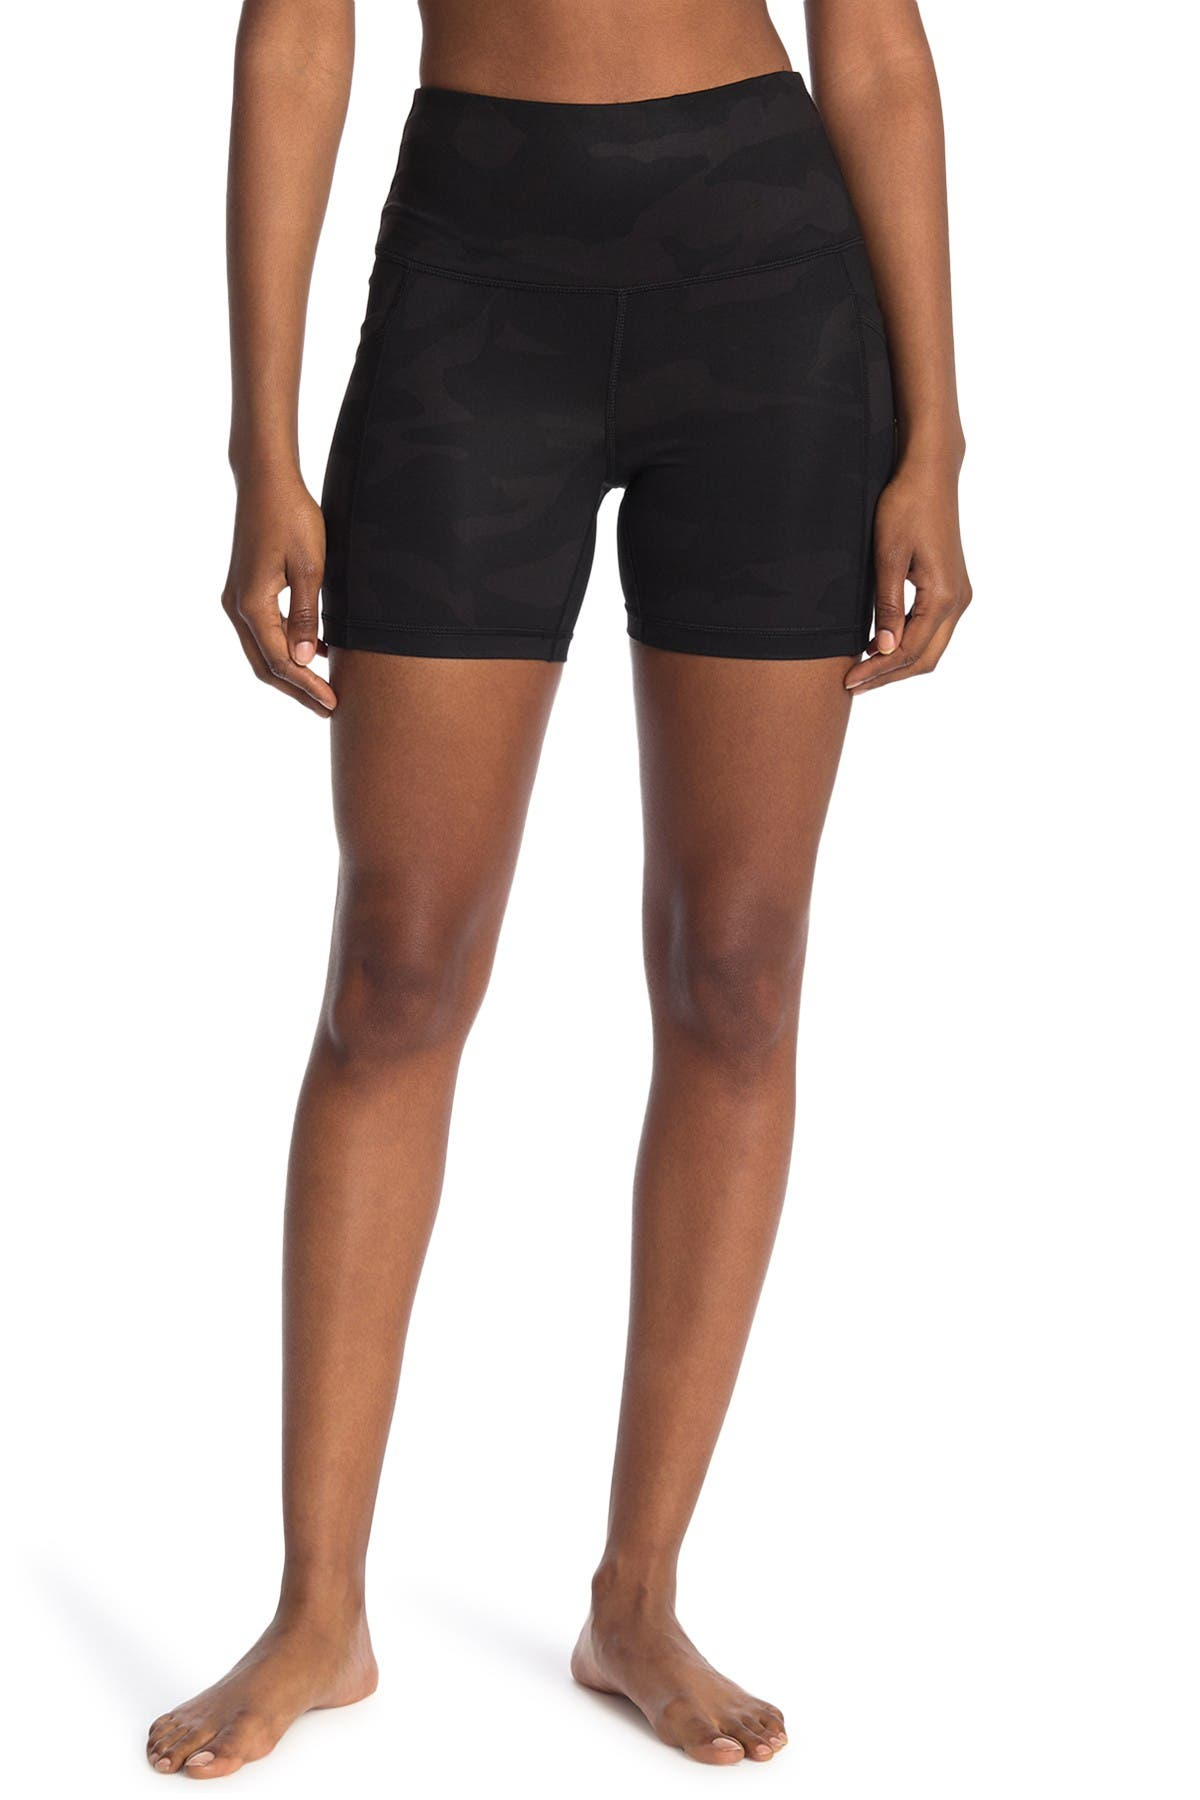 Image of 90 Degree By Reflex Luxe High Rise Bike Shorts